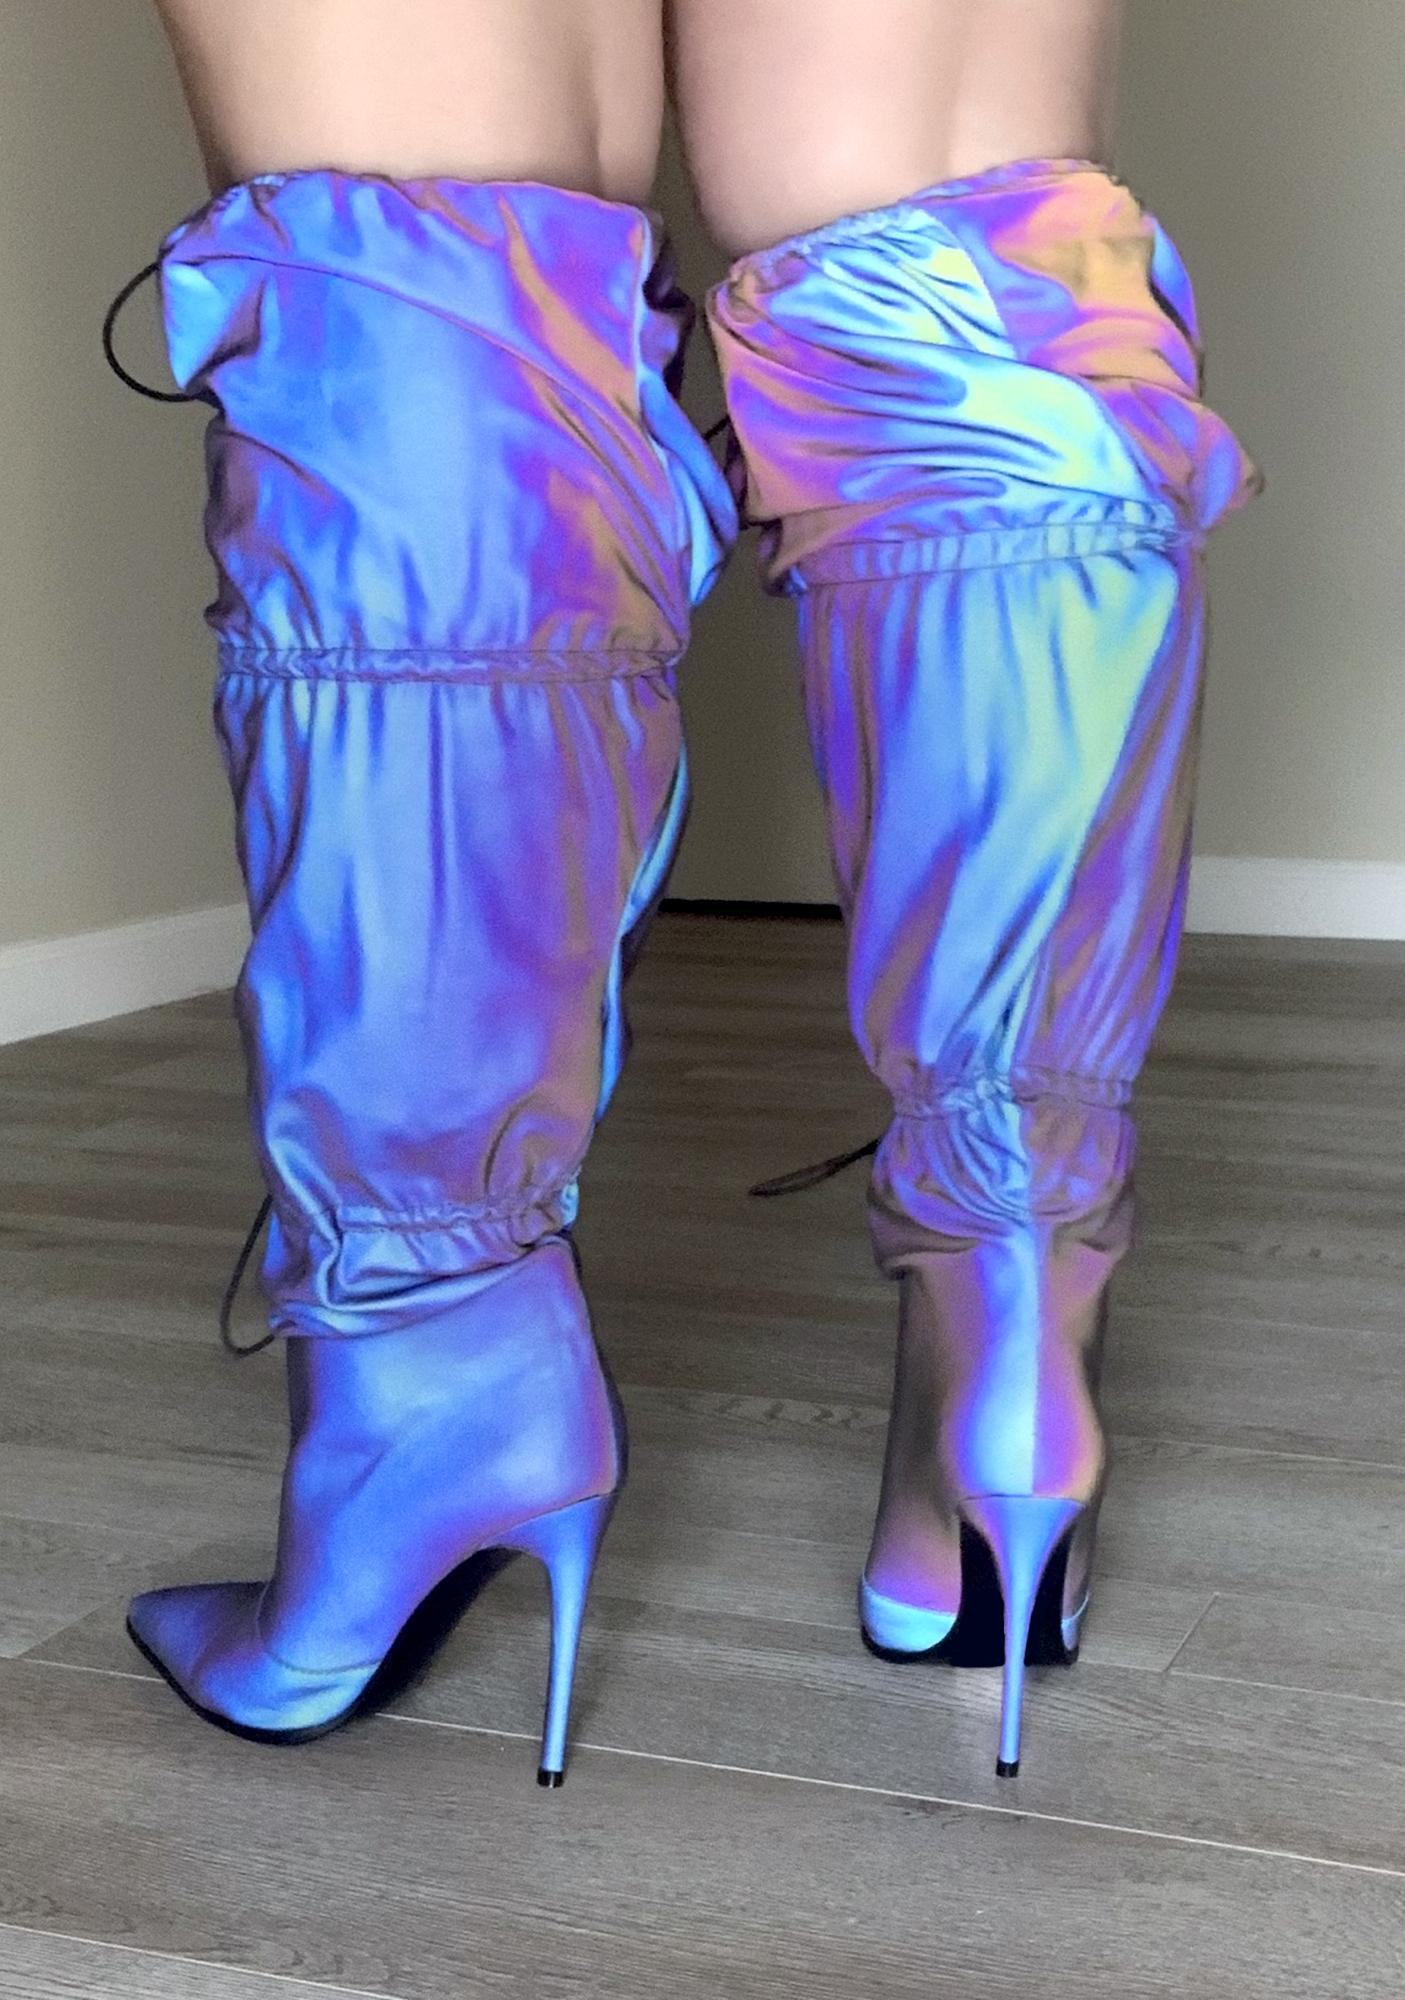 Poster Grl Rack It Up Reflective Boots